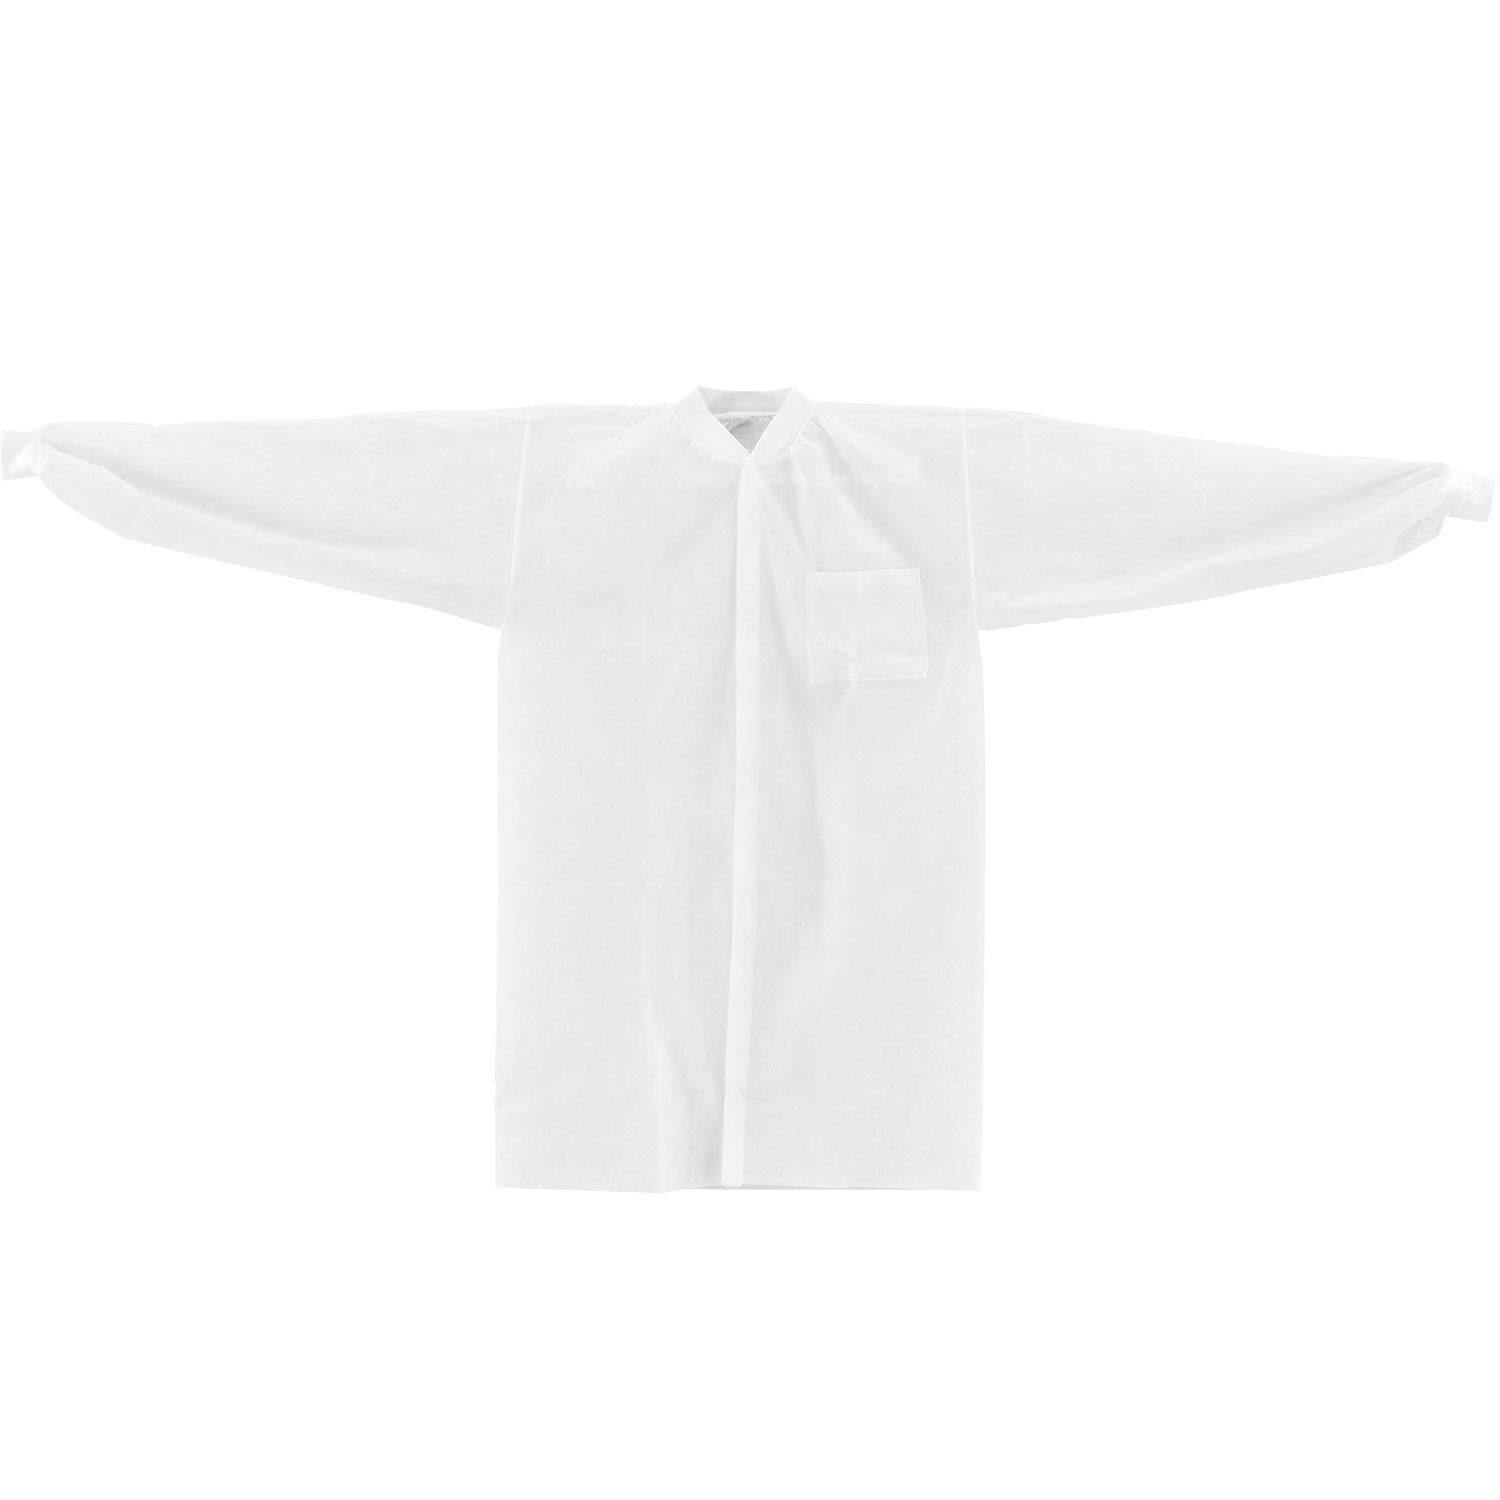 White Disposable Polypropylene Lab Coat - 1 Pocket, Knit Wrist & Collar, Snap Closure, 39'' x 24'', Small, Pack of 25 by One Stop Shop